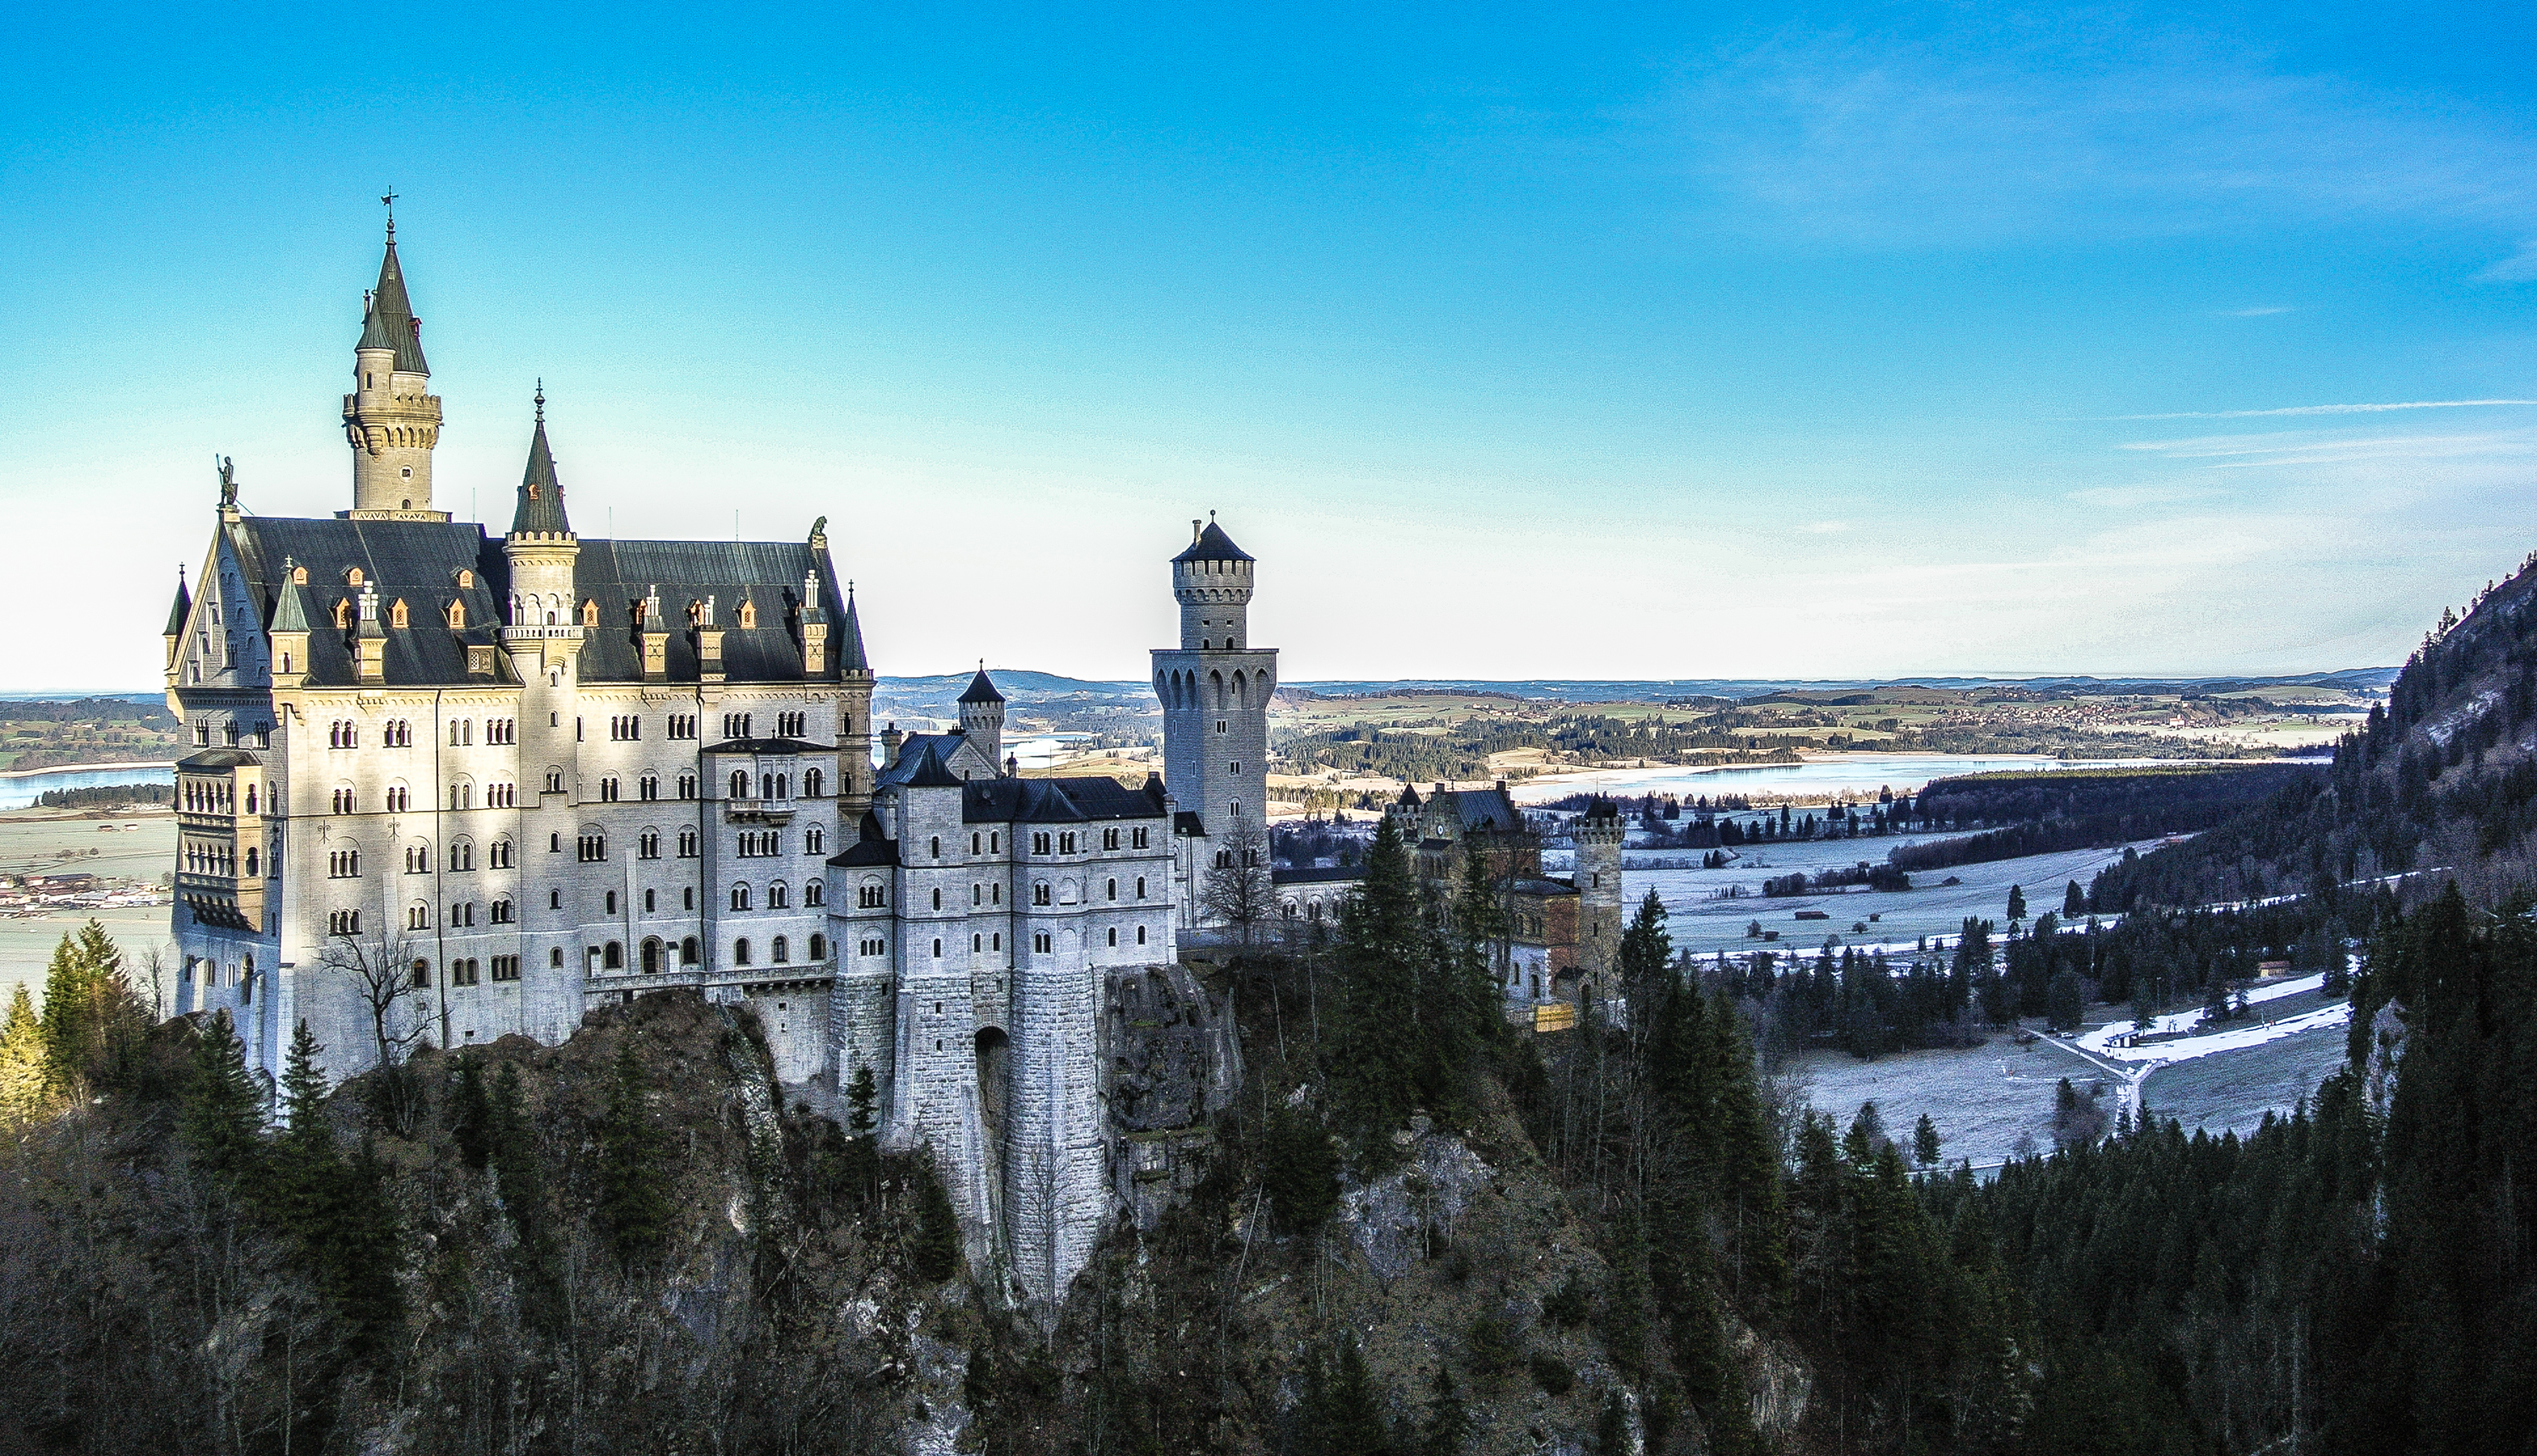 New Year's at Neuschwanstein Castle | Wunderscapes Travel